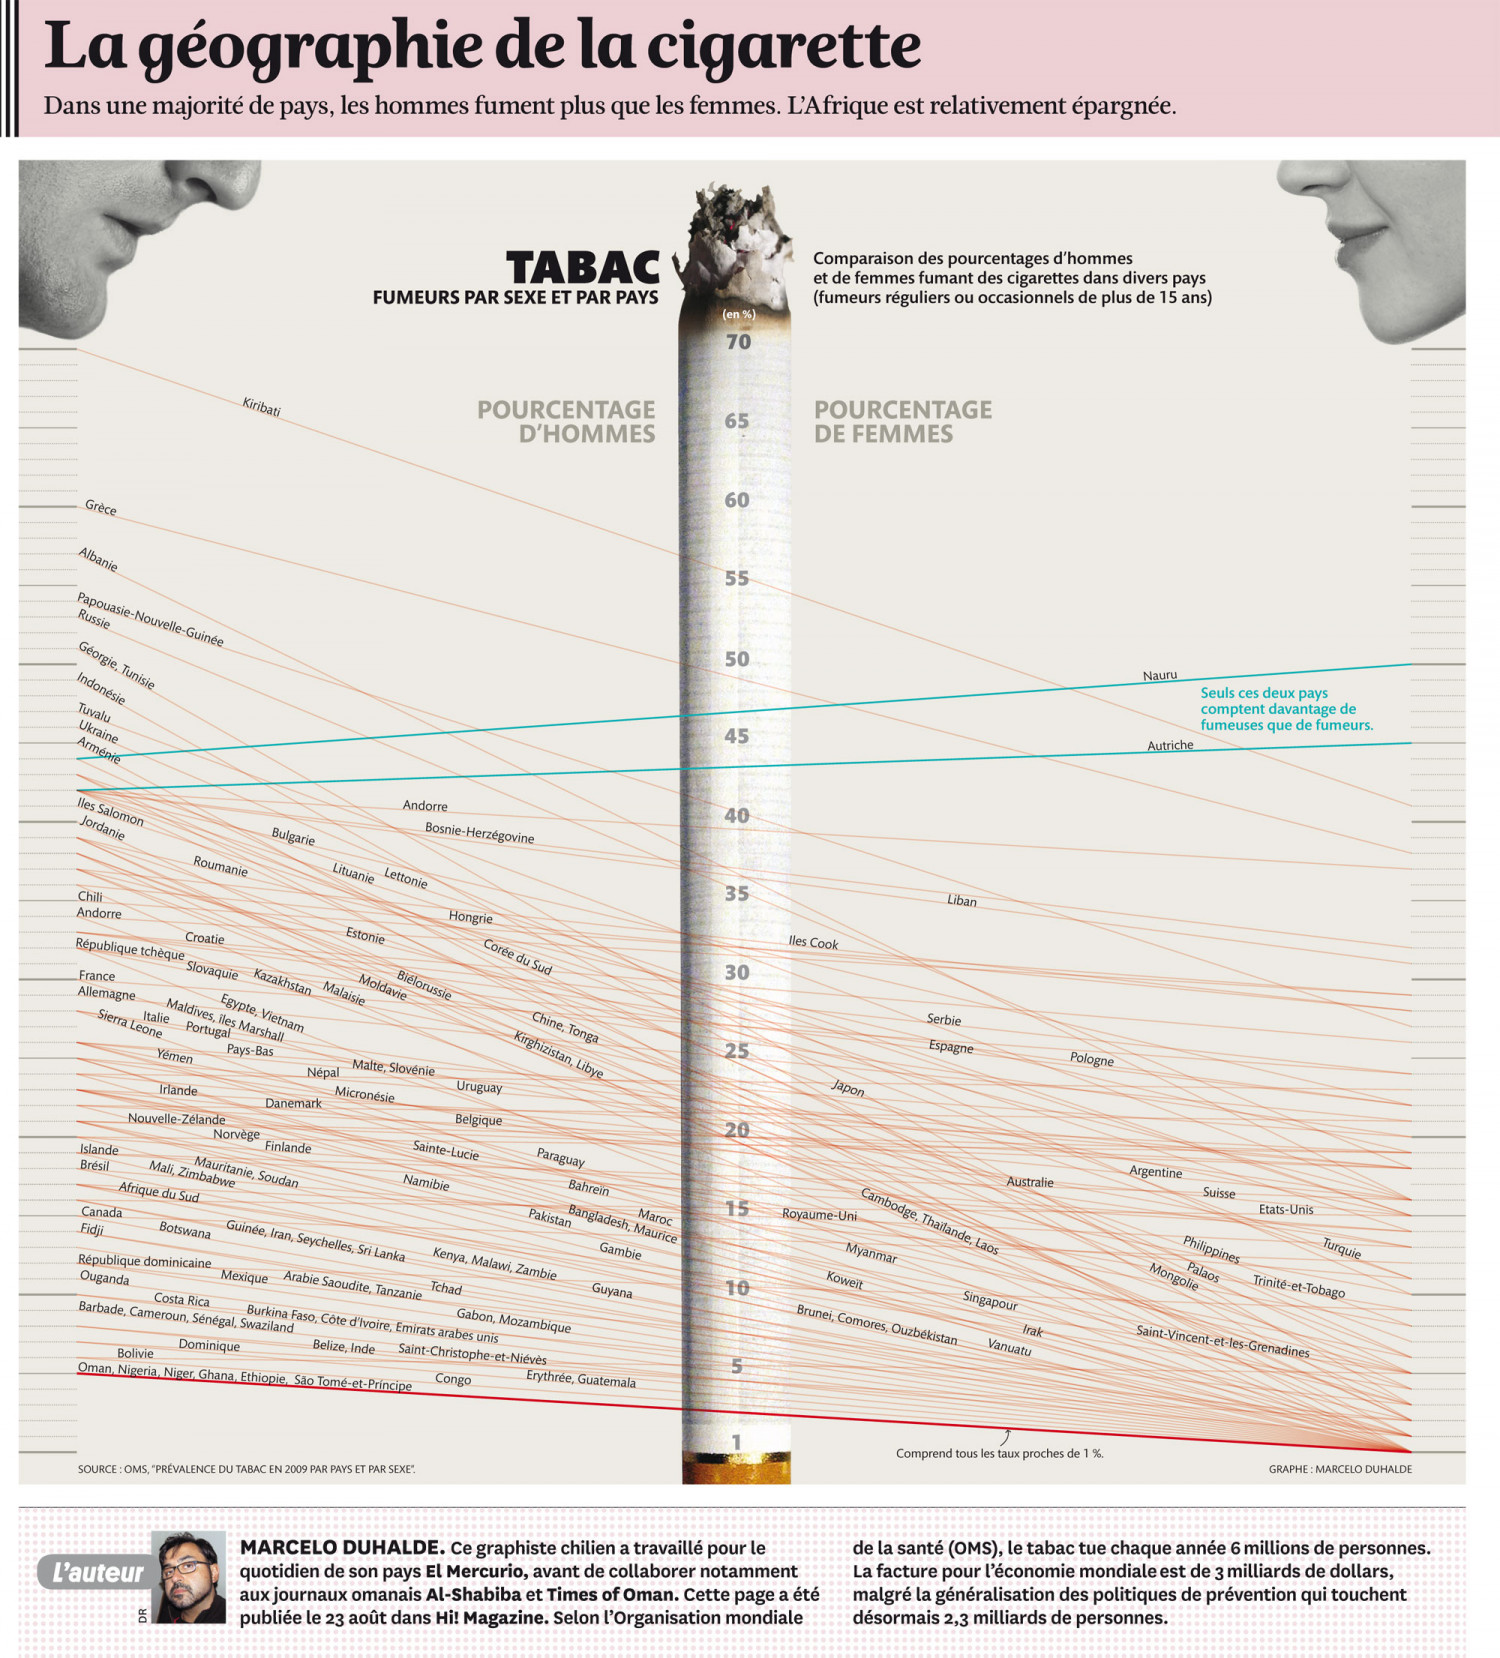 TABAC Infographic